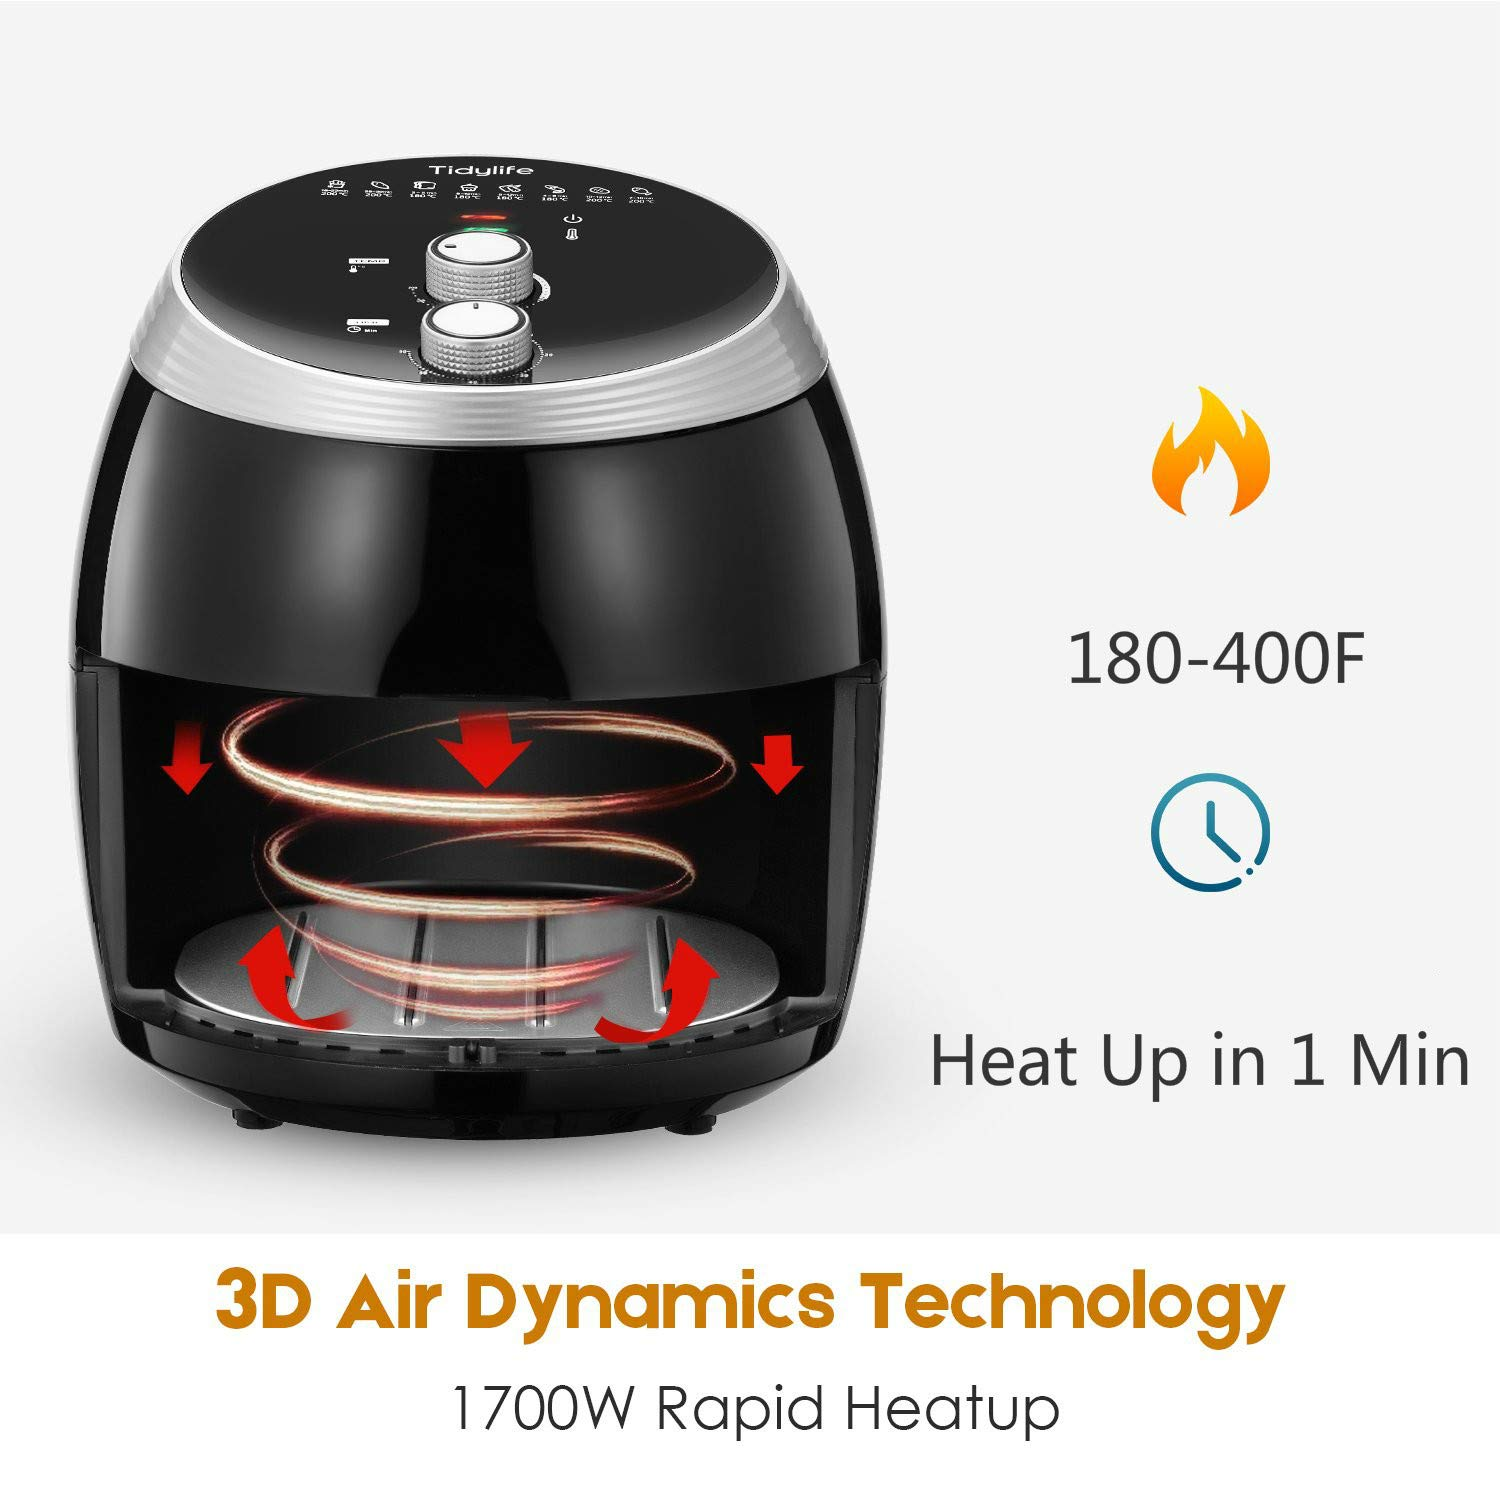 Air Fryer, Tidylife 6.3QT Large Air Fryer, 1700W Oilless XL Oven Cooker, Smart Time and Temperature Control, 7 Cooking Preset, 180-400℉Hot Air Fryer with Non-stick Basket, Auto Shut Off, 50+ Recipes by Tidylife (Image #3)